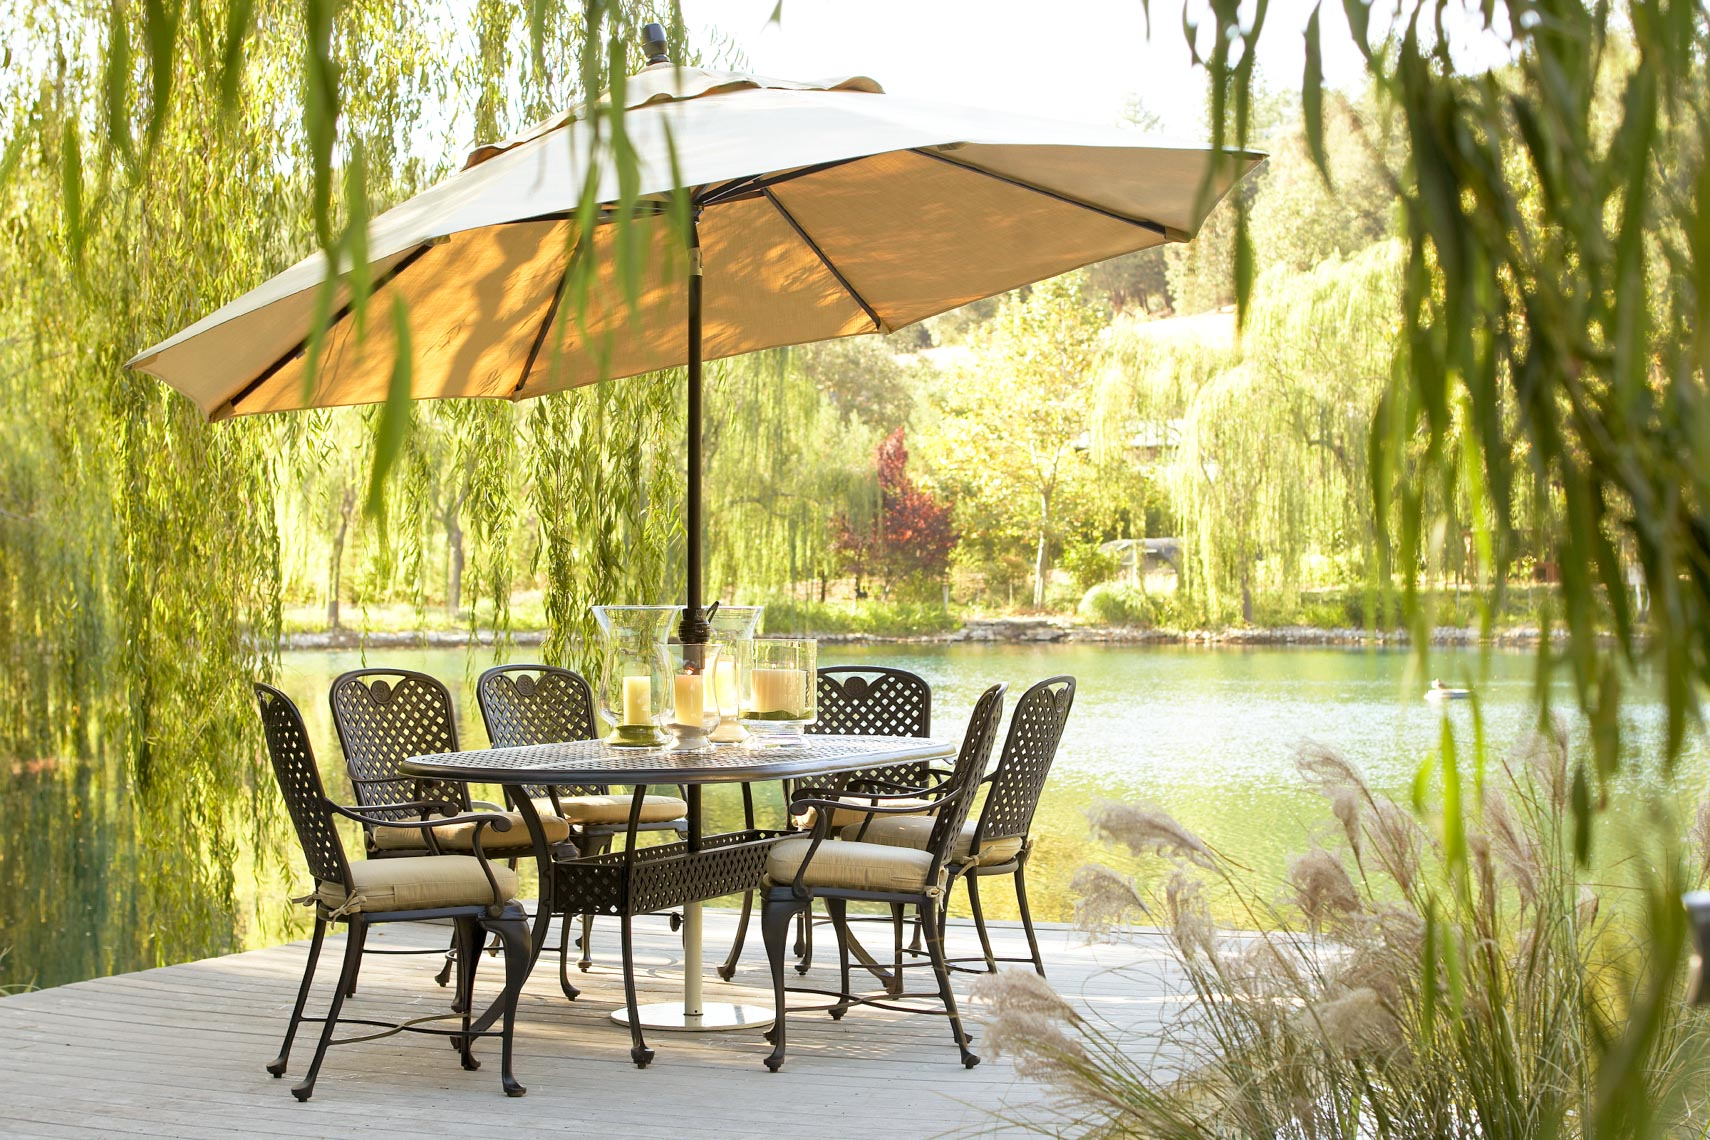 Metal furniture and table with umbrella on dock by water San Francisco product photographer